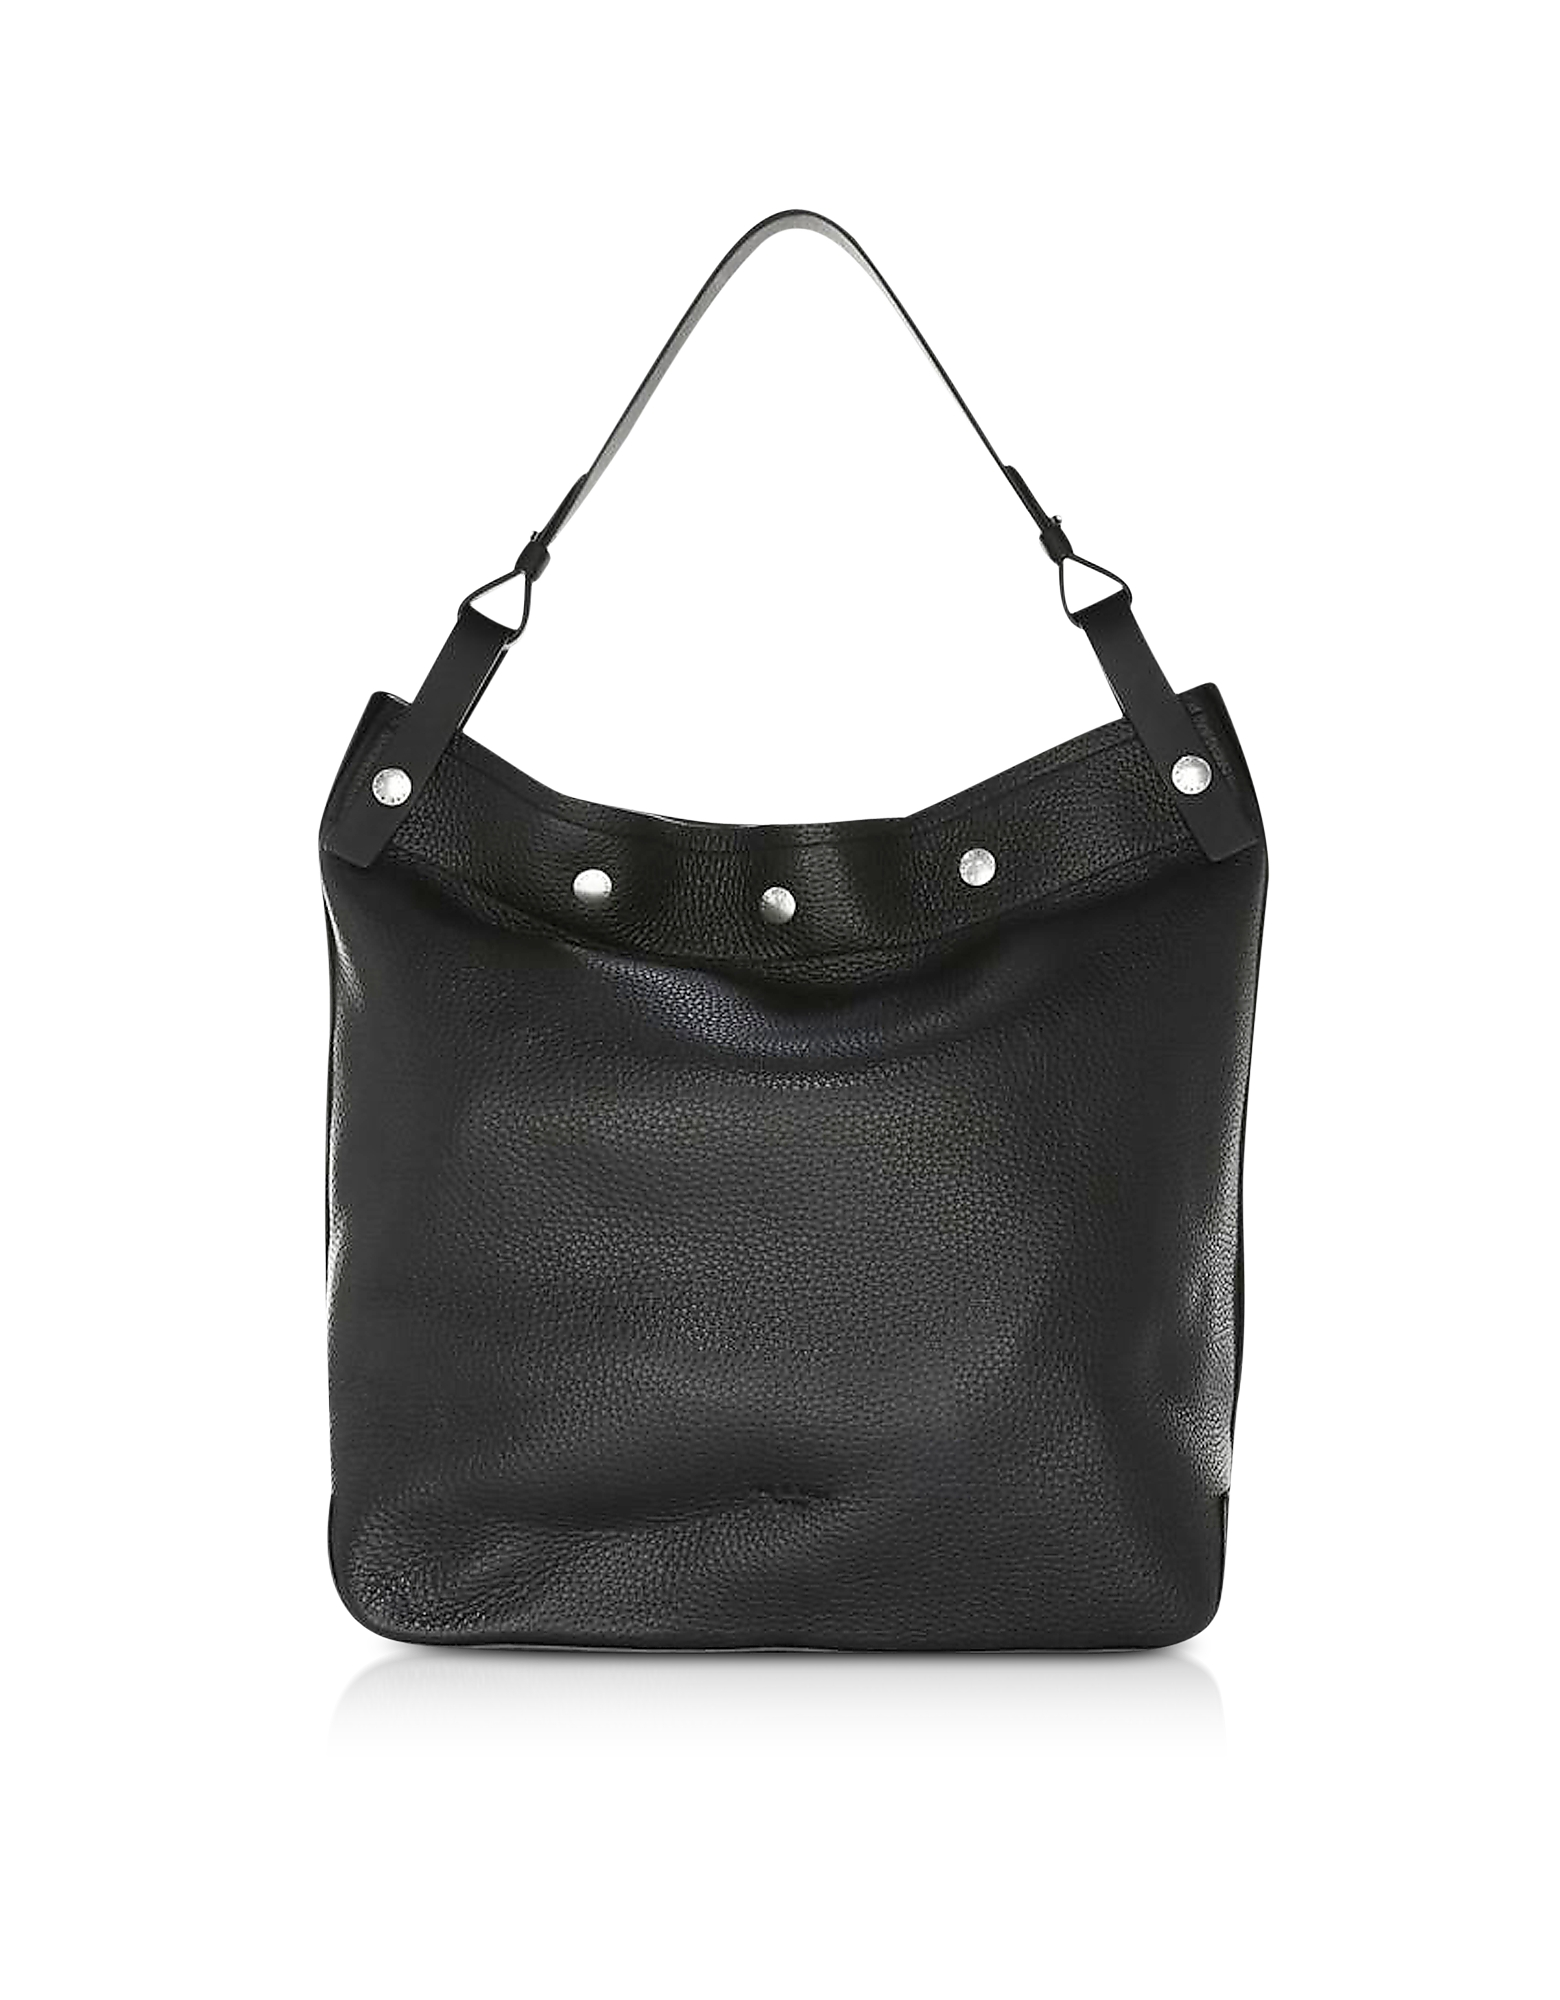 Compass Snap Hobo Borsa in Pelle Nera